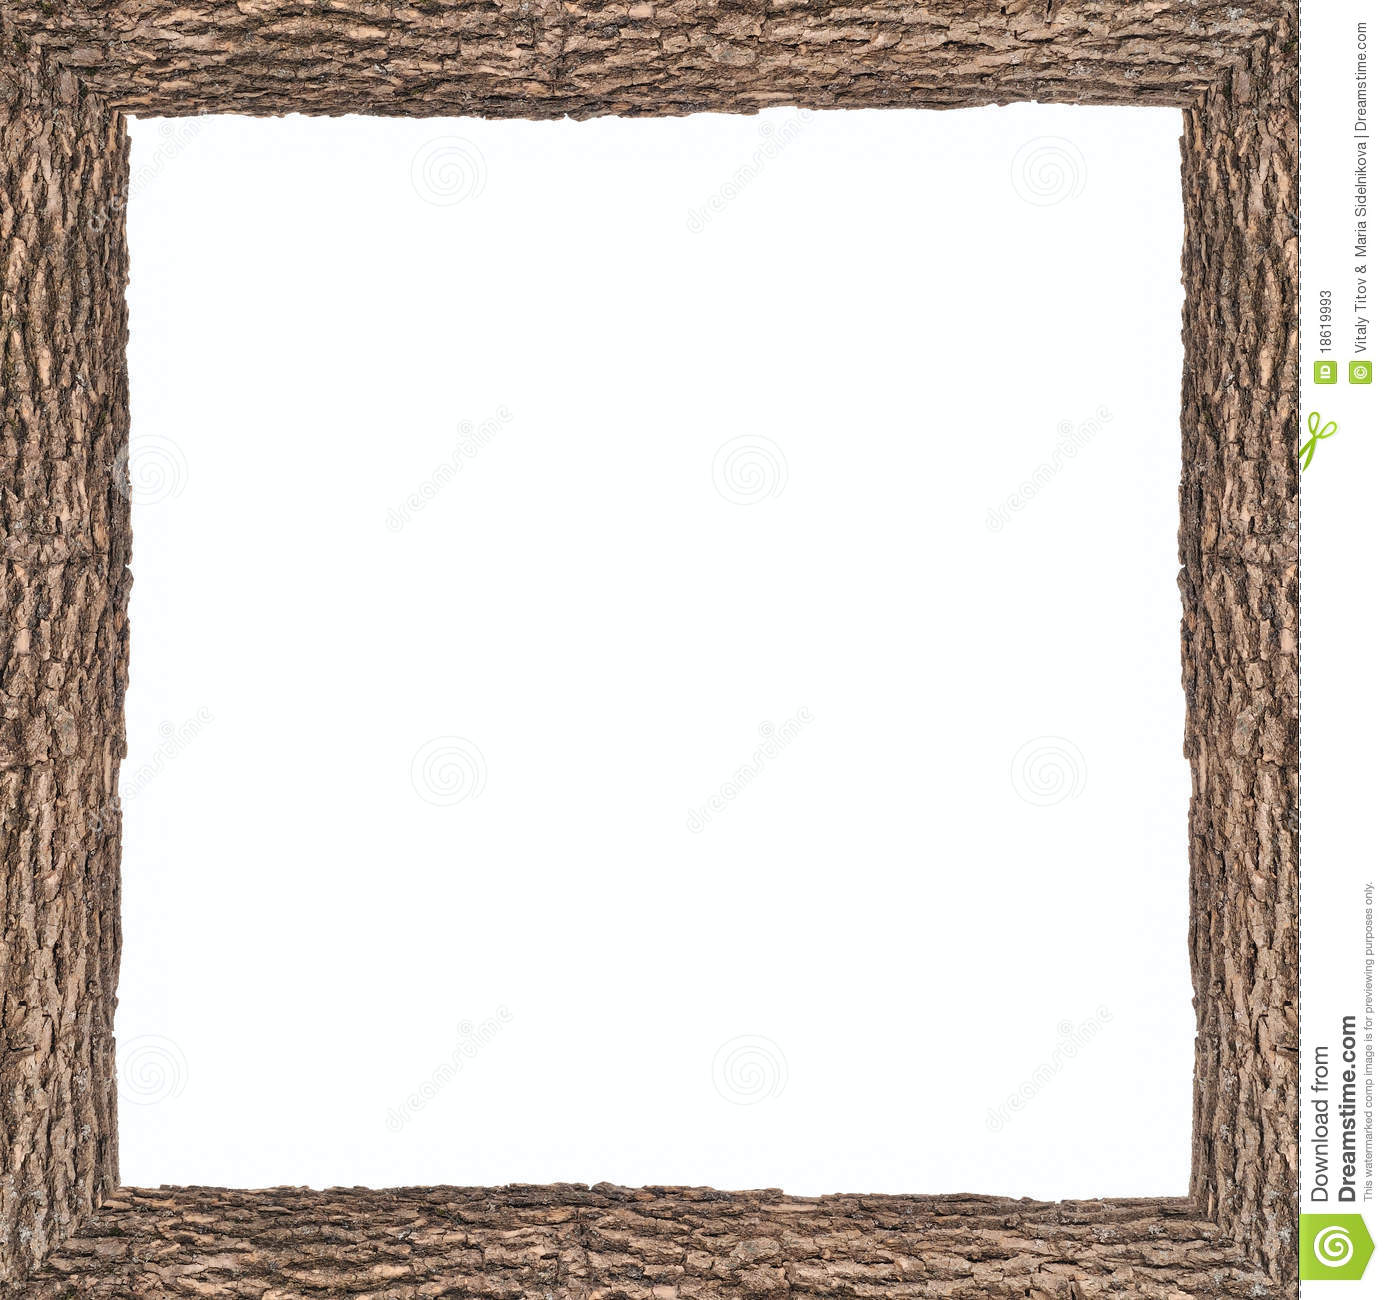 Square Frame With Wooden Bark Texture Stock Photos - Image ...